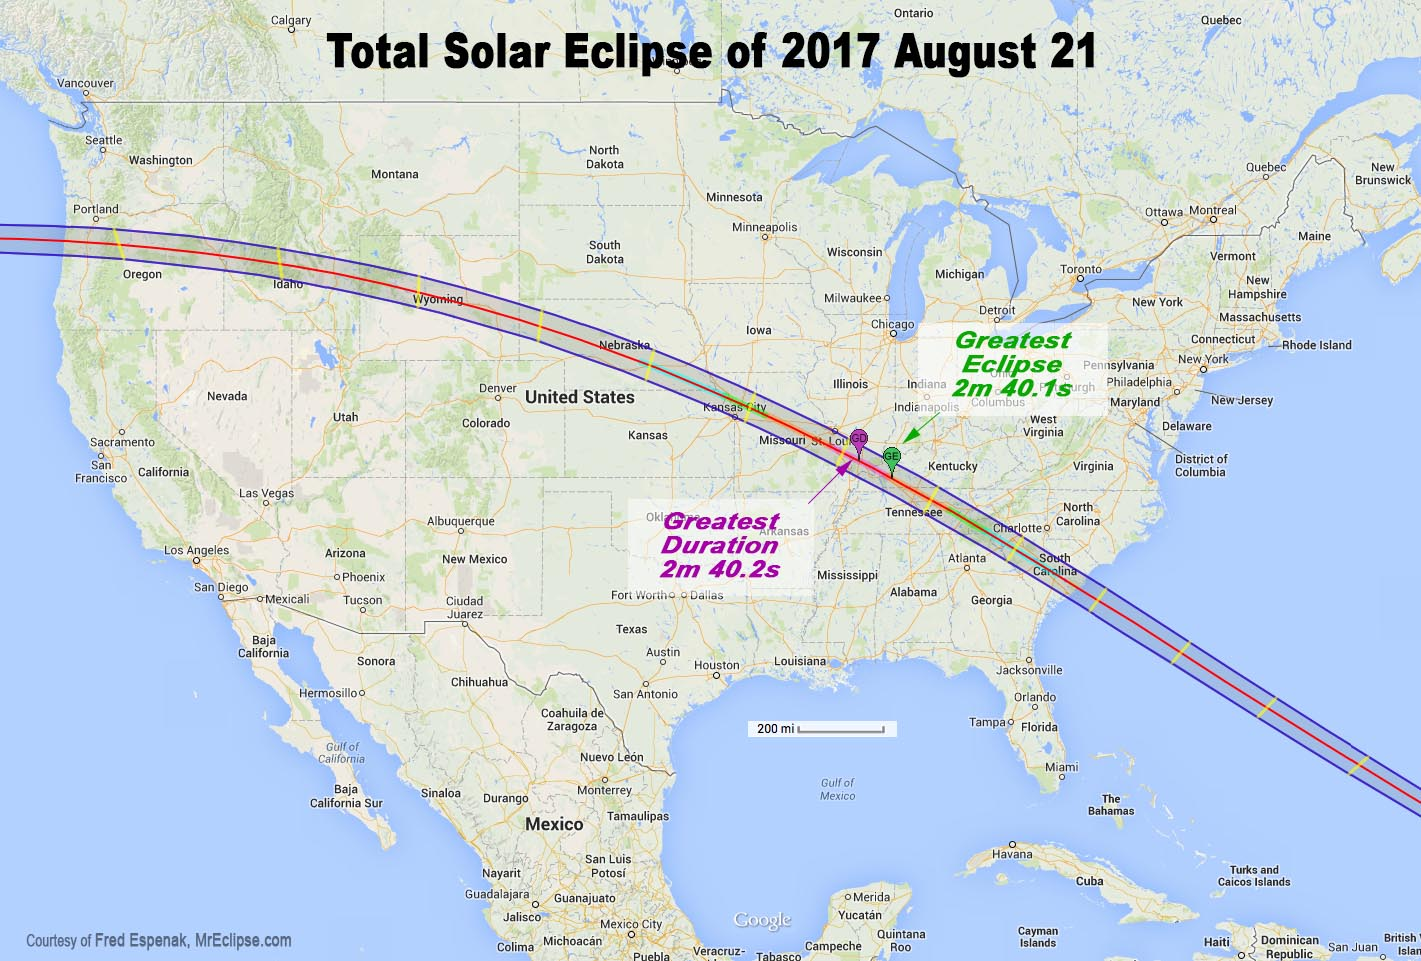 Nasa Interactive Solar Eclipse Map.Apod 2016 August 21 Map Of Total Solar Eclipse Path In 2017 August